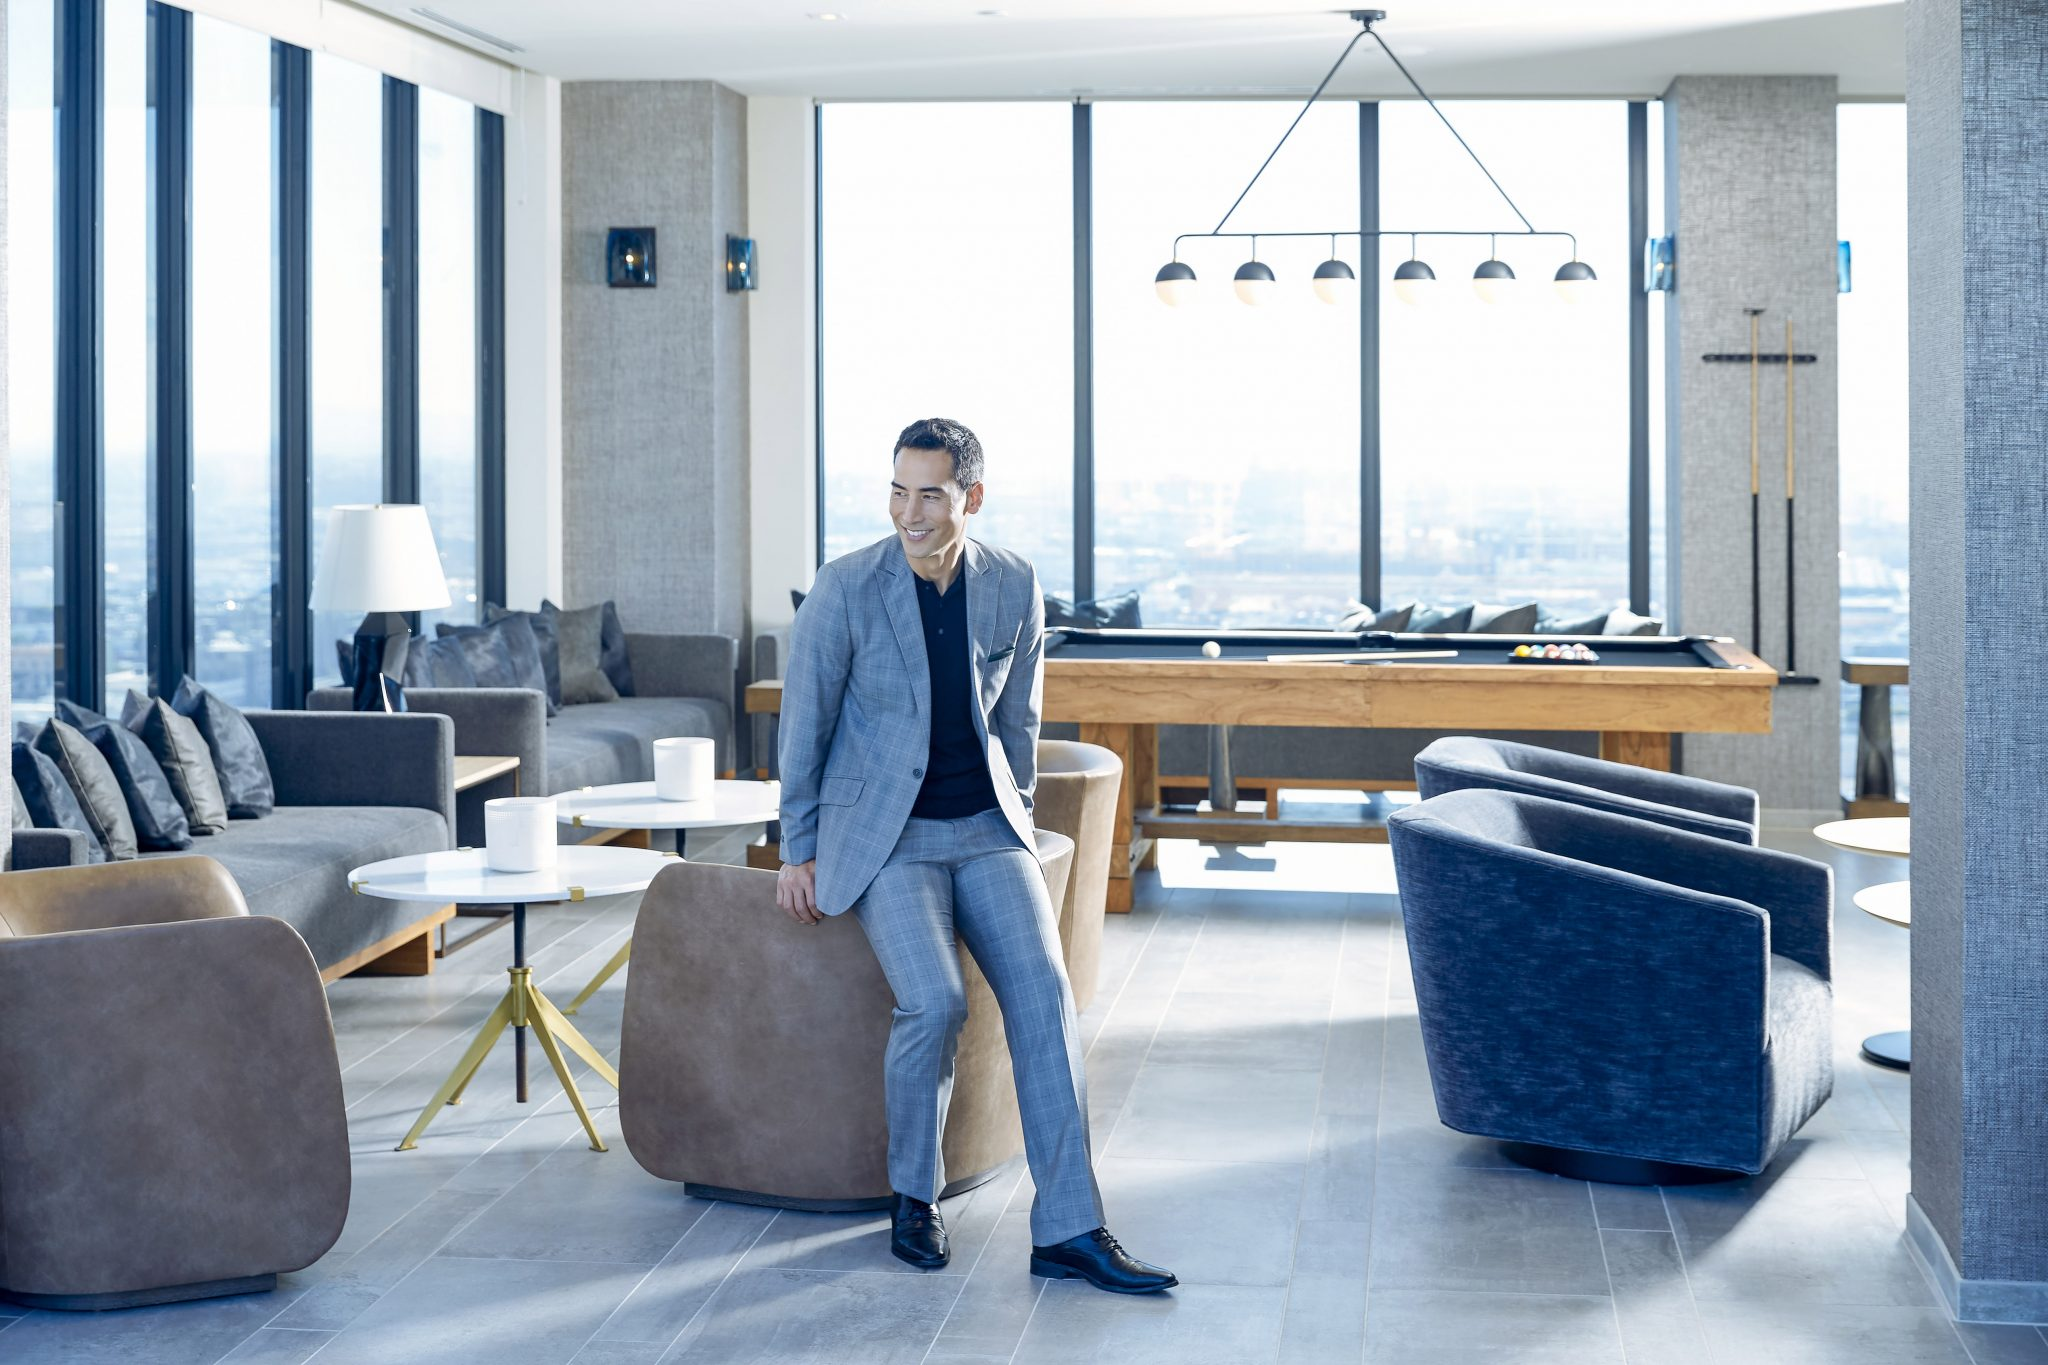 Interior with man in suit leaning on the back of a chair in a modern game room with pool table and city views ch